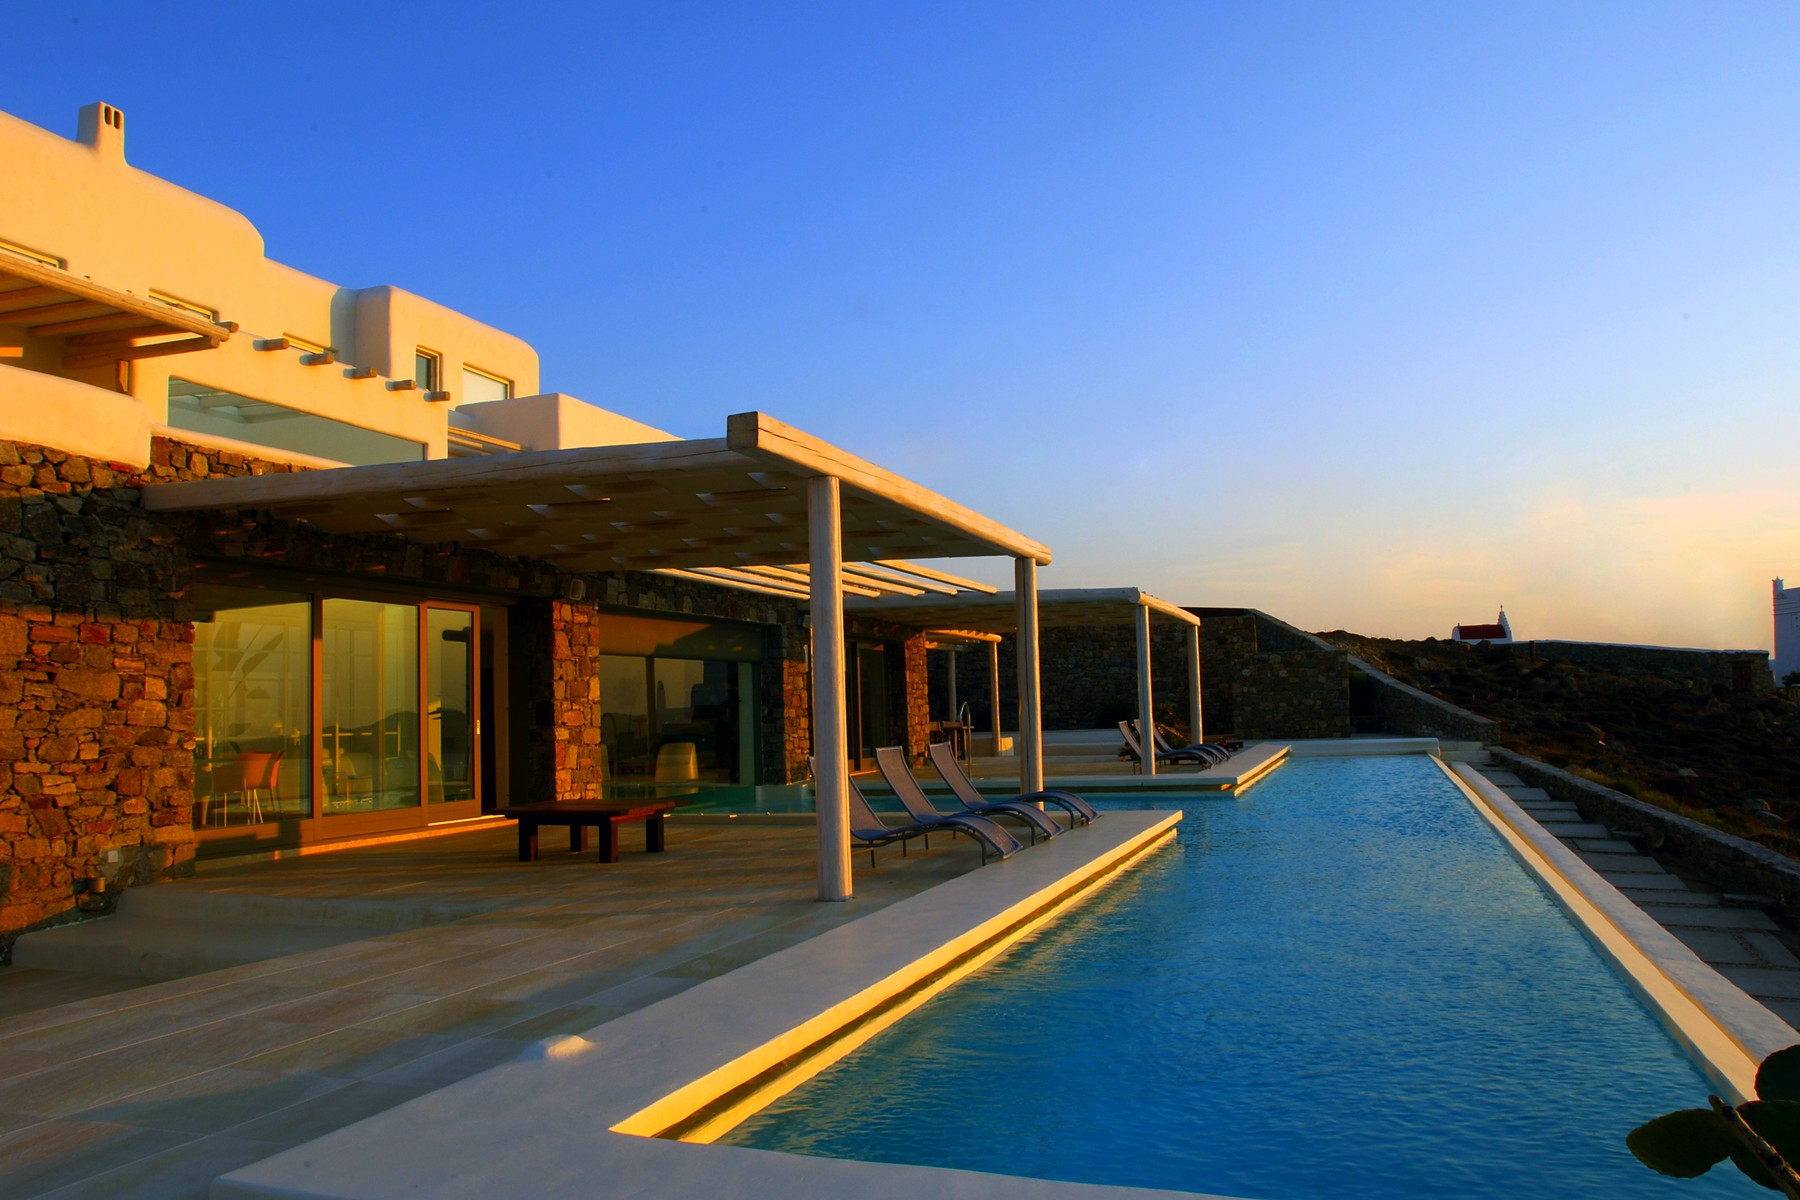 Casa Unifamiliar por un Venta en Jewel by the Sea Mykonos, Egeo Meridional, 84600 Grecia